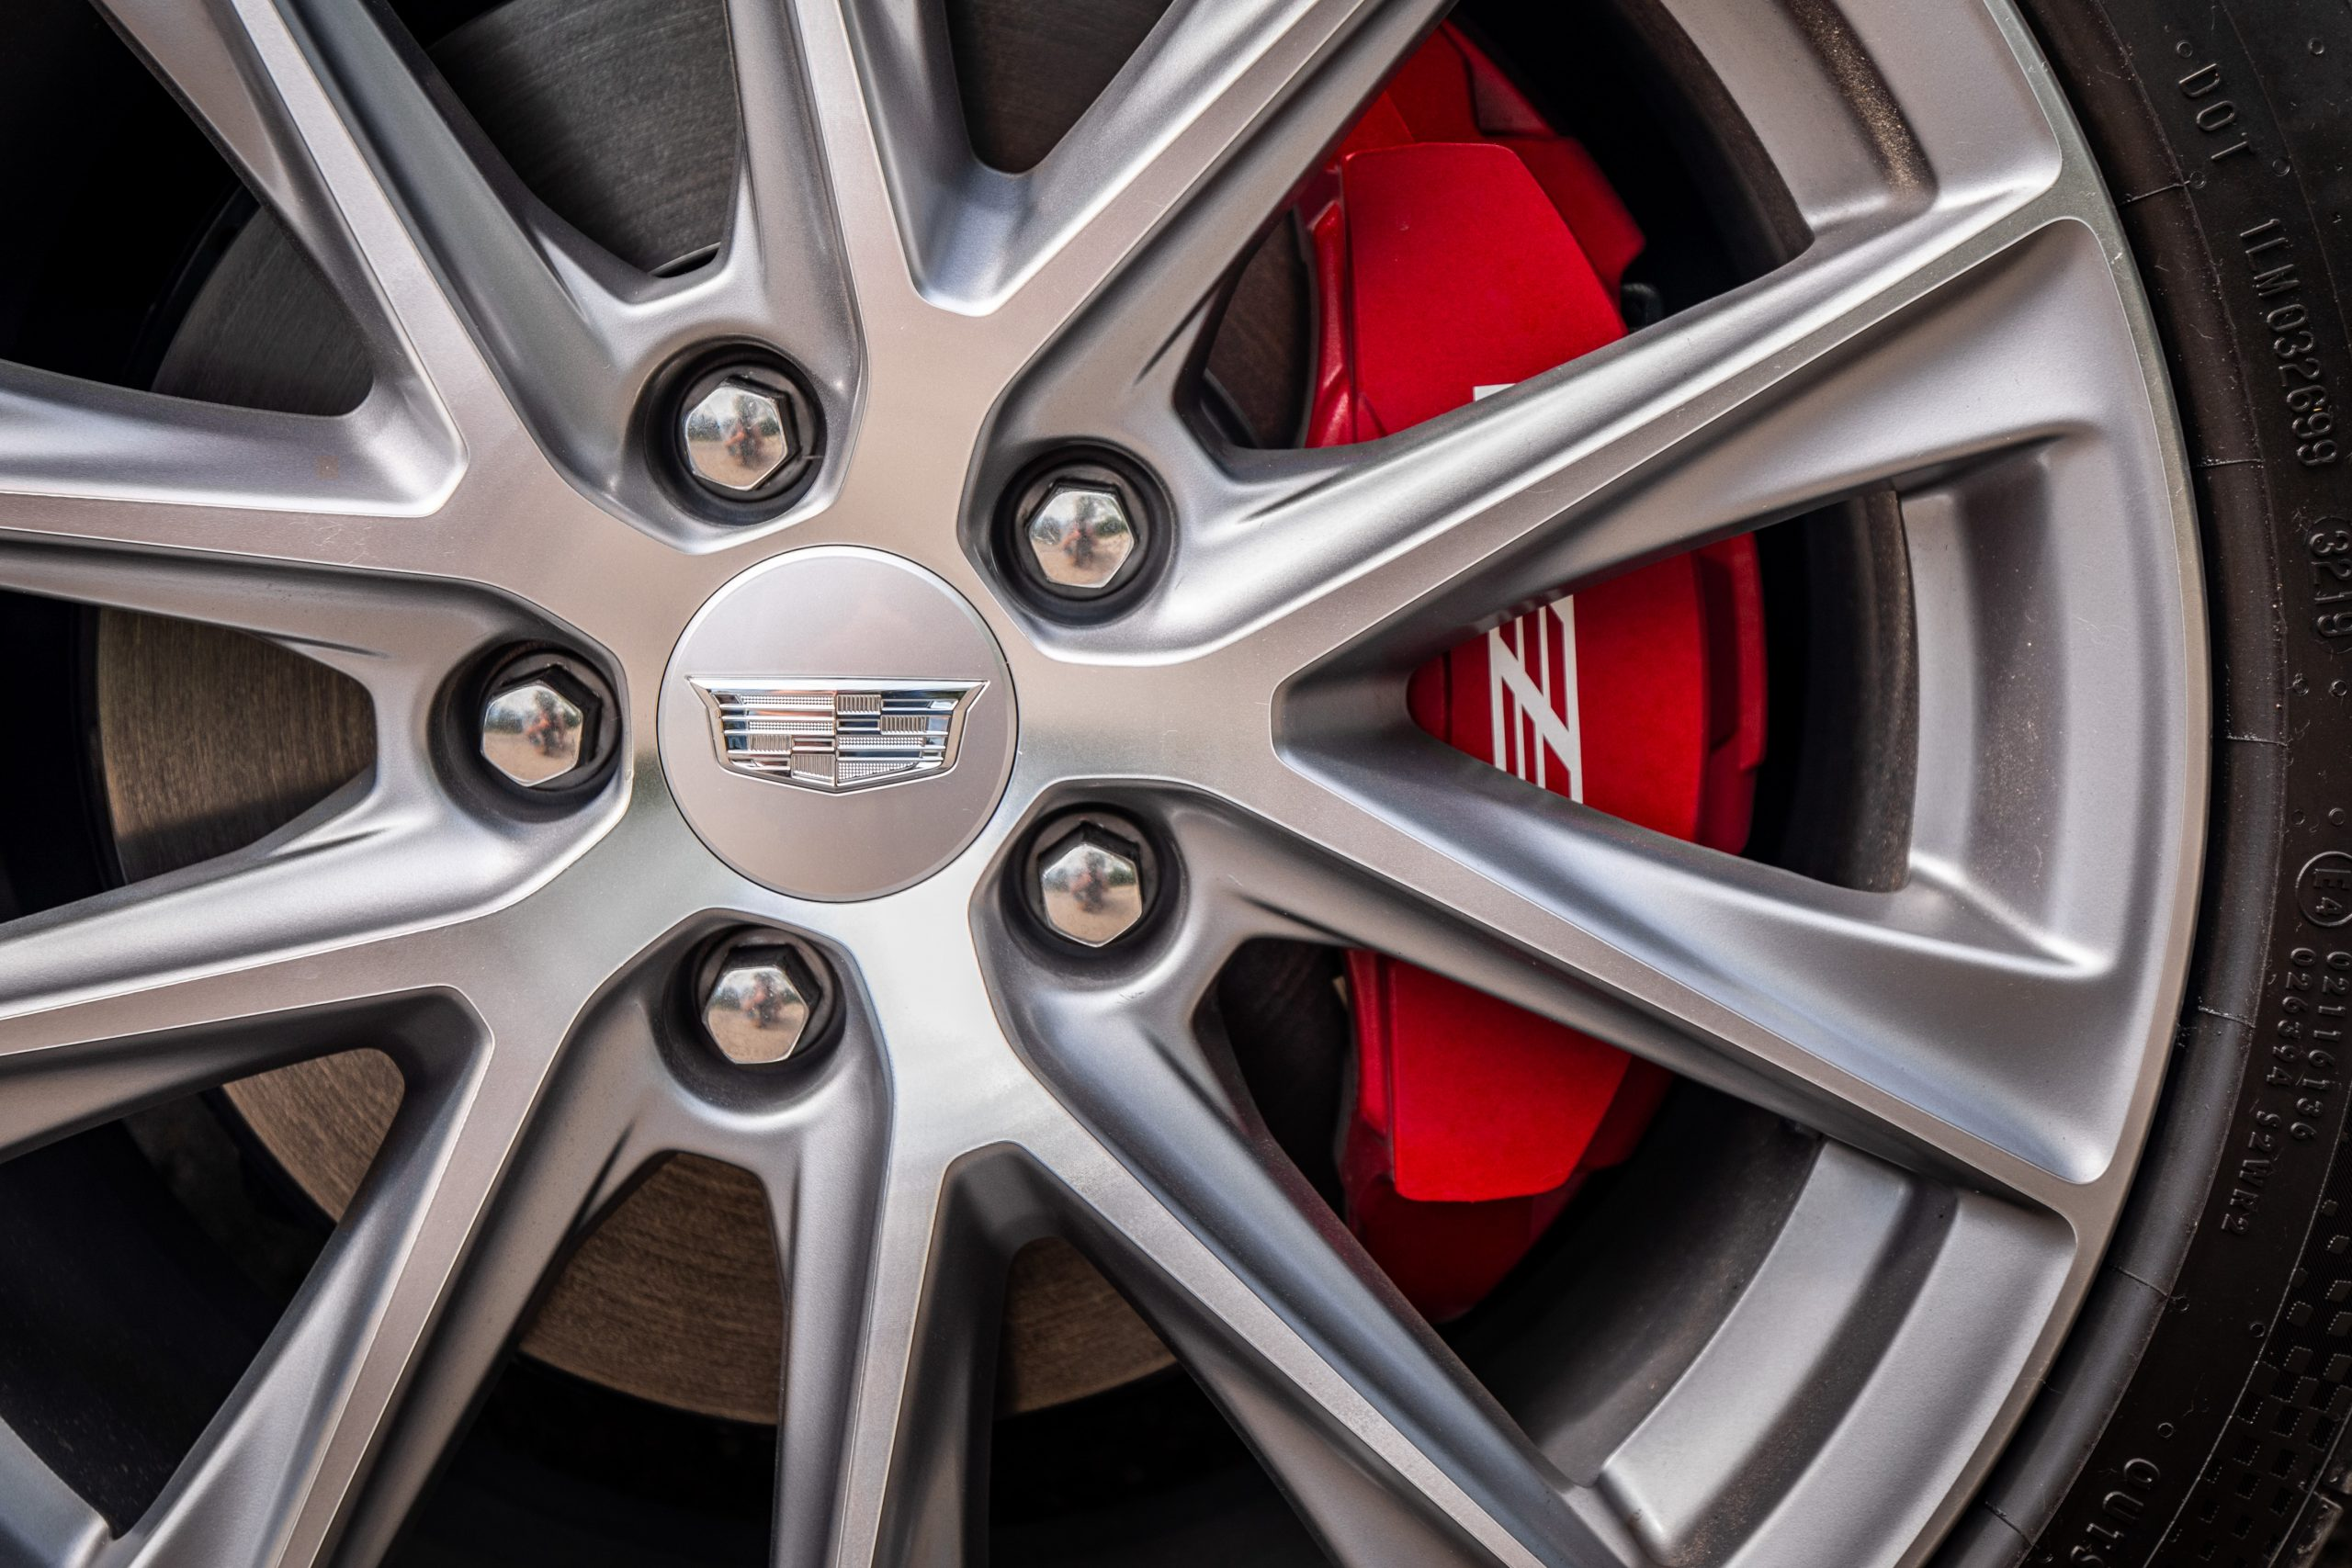 2020 Cadillac CT4-V wheel caliper close up